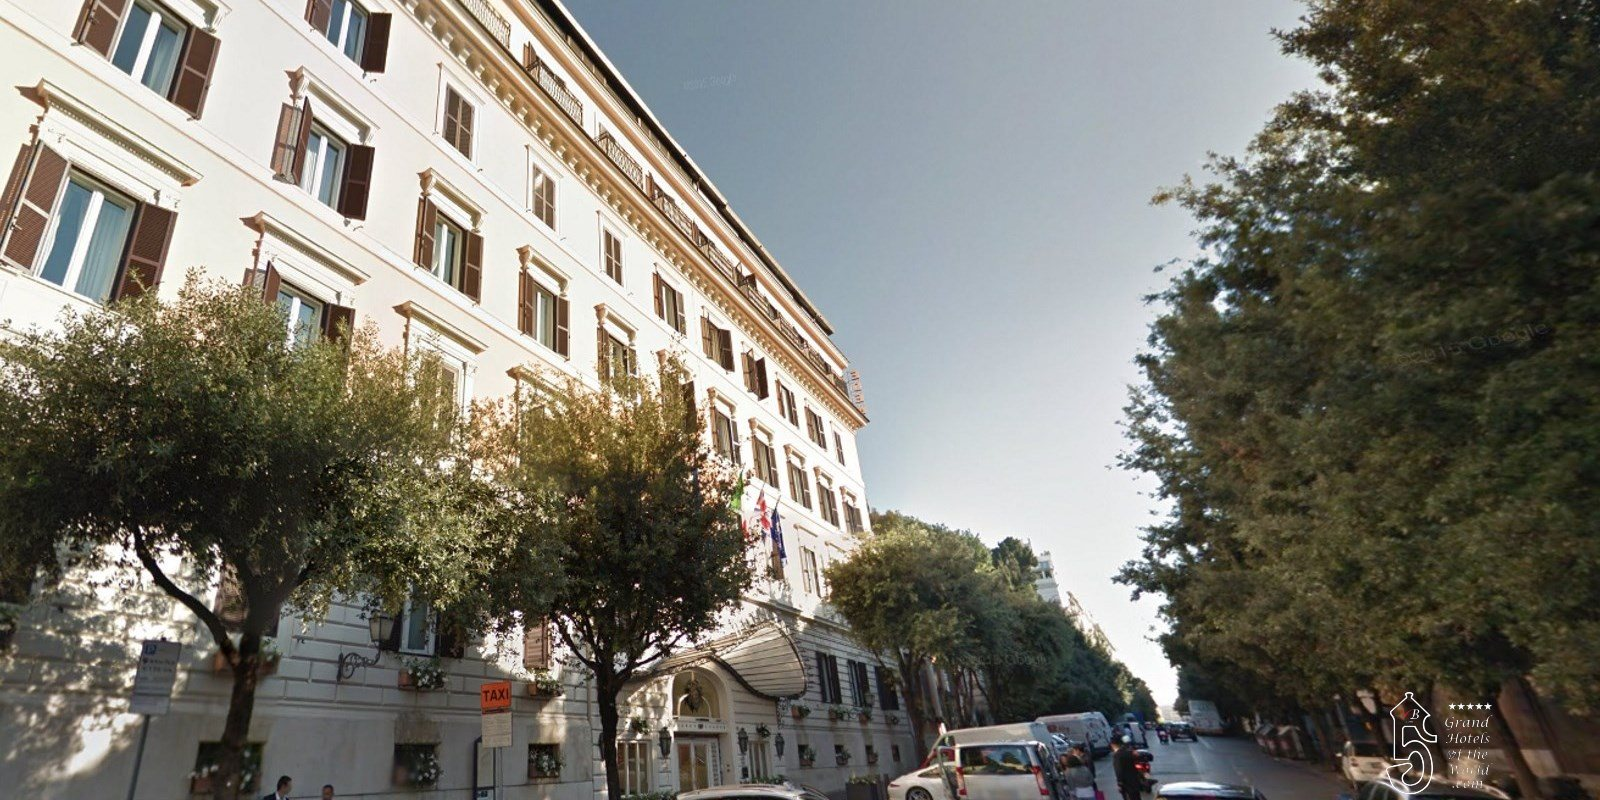 Hotel Eden in Rome by Dorchester Collection